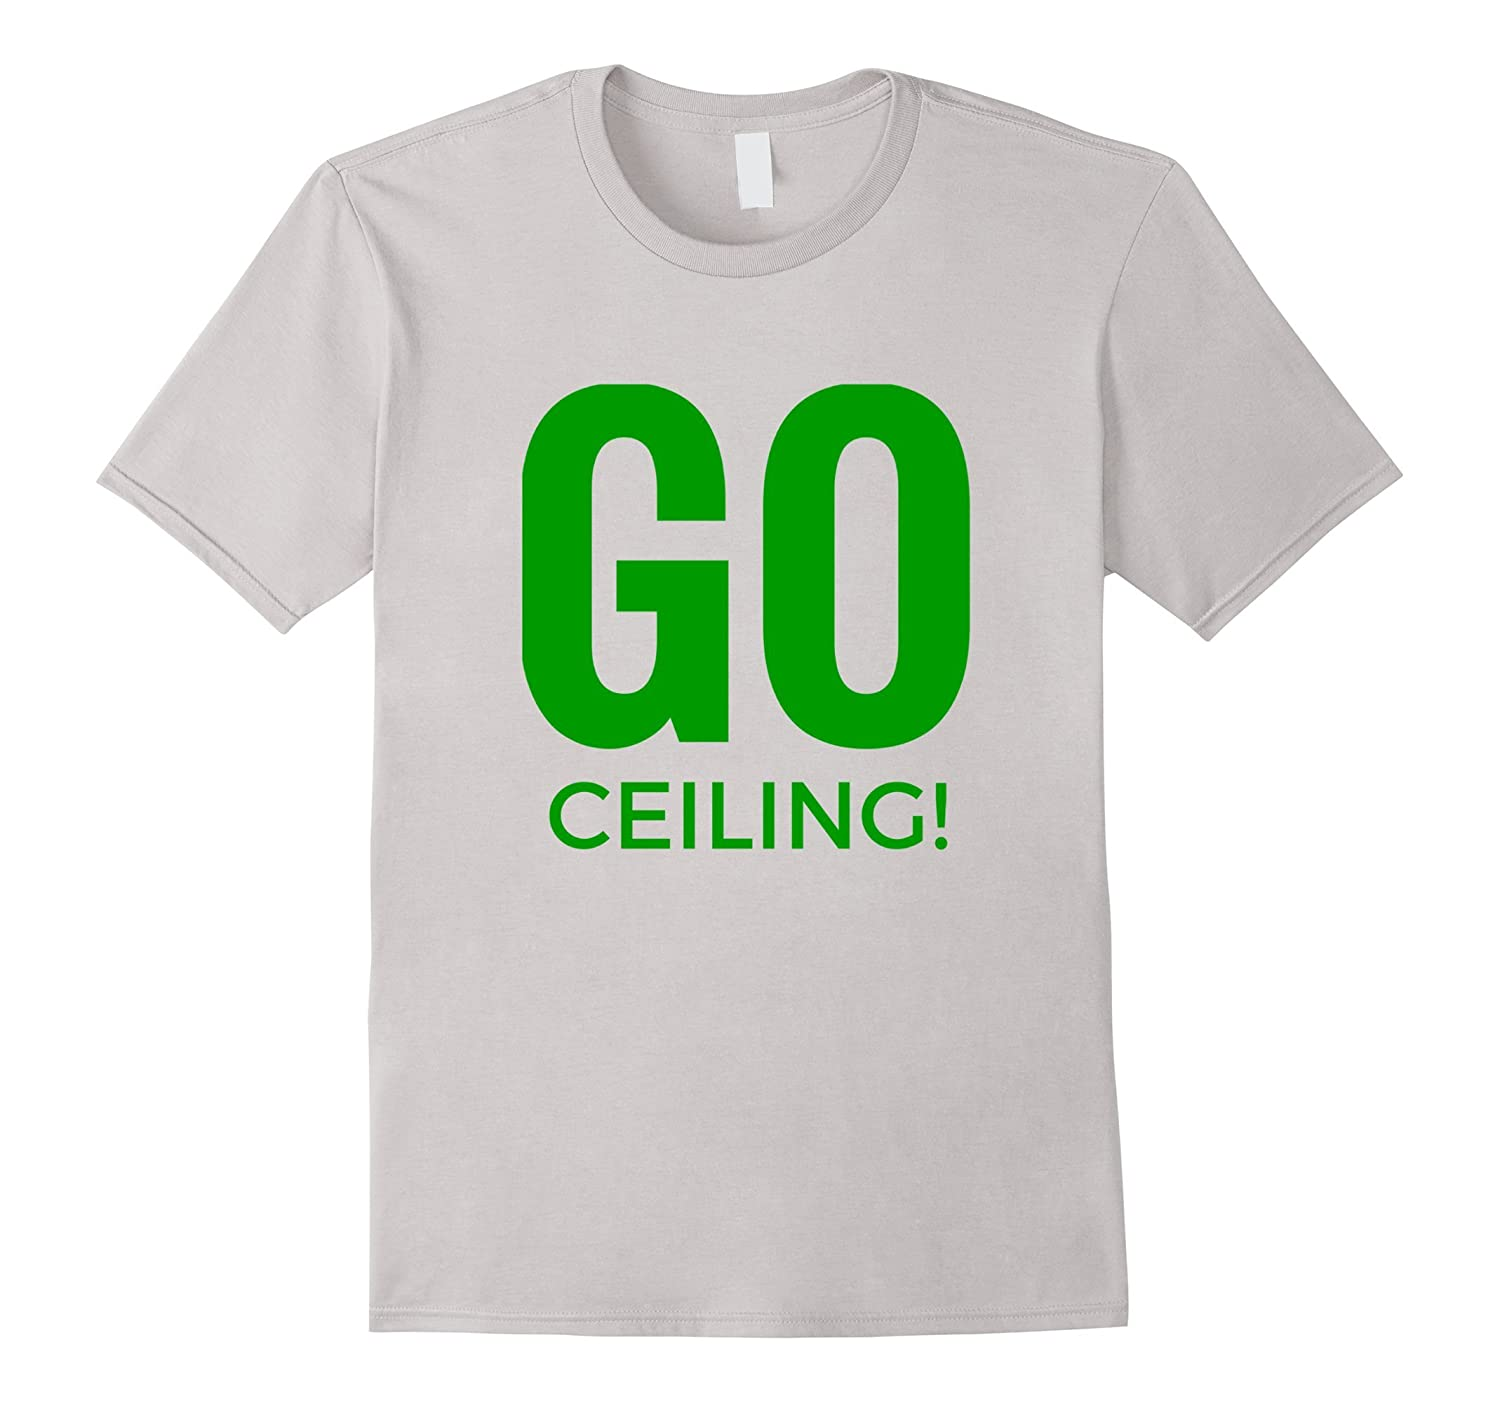 No fuss halloween costume ceiling fan rt rateeshirt no fuss halloween costume ceiling fan rt aloadofball Image collections